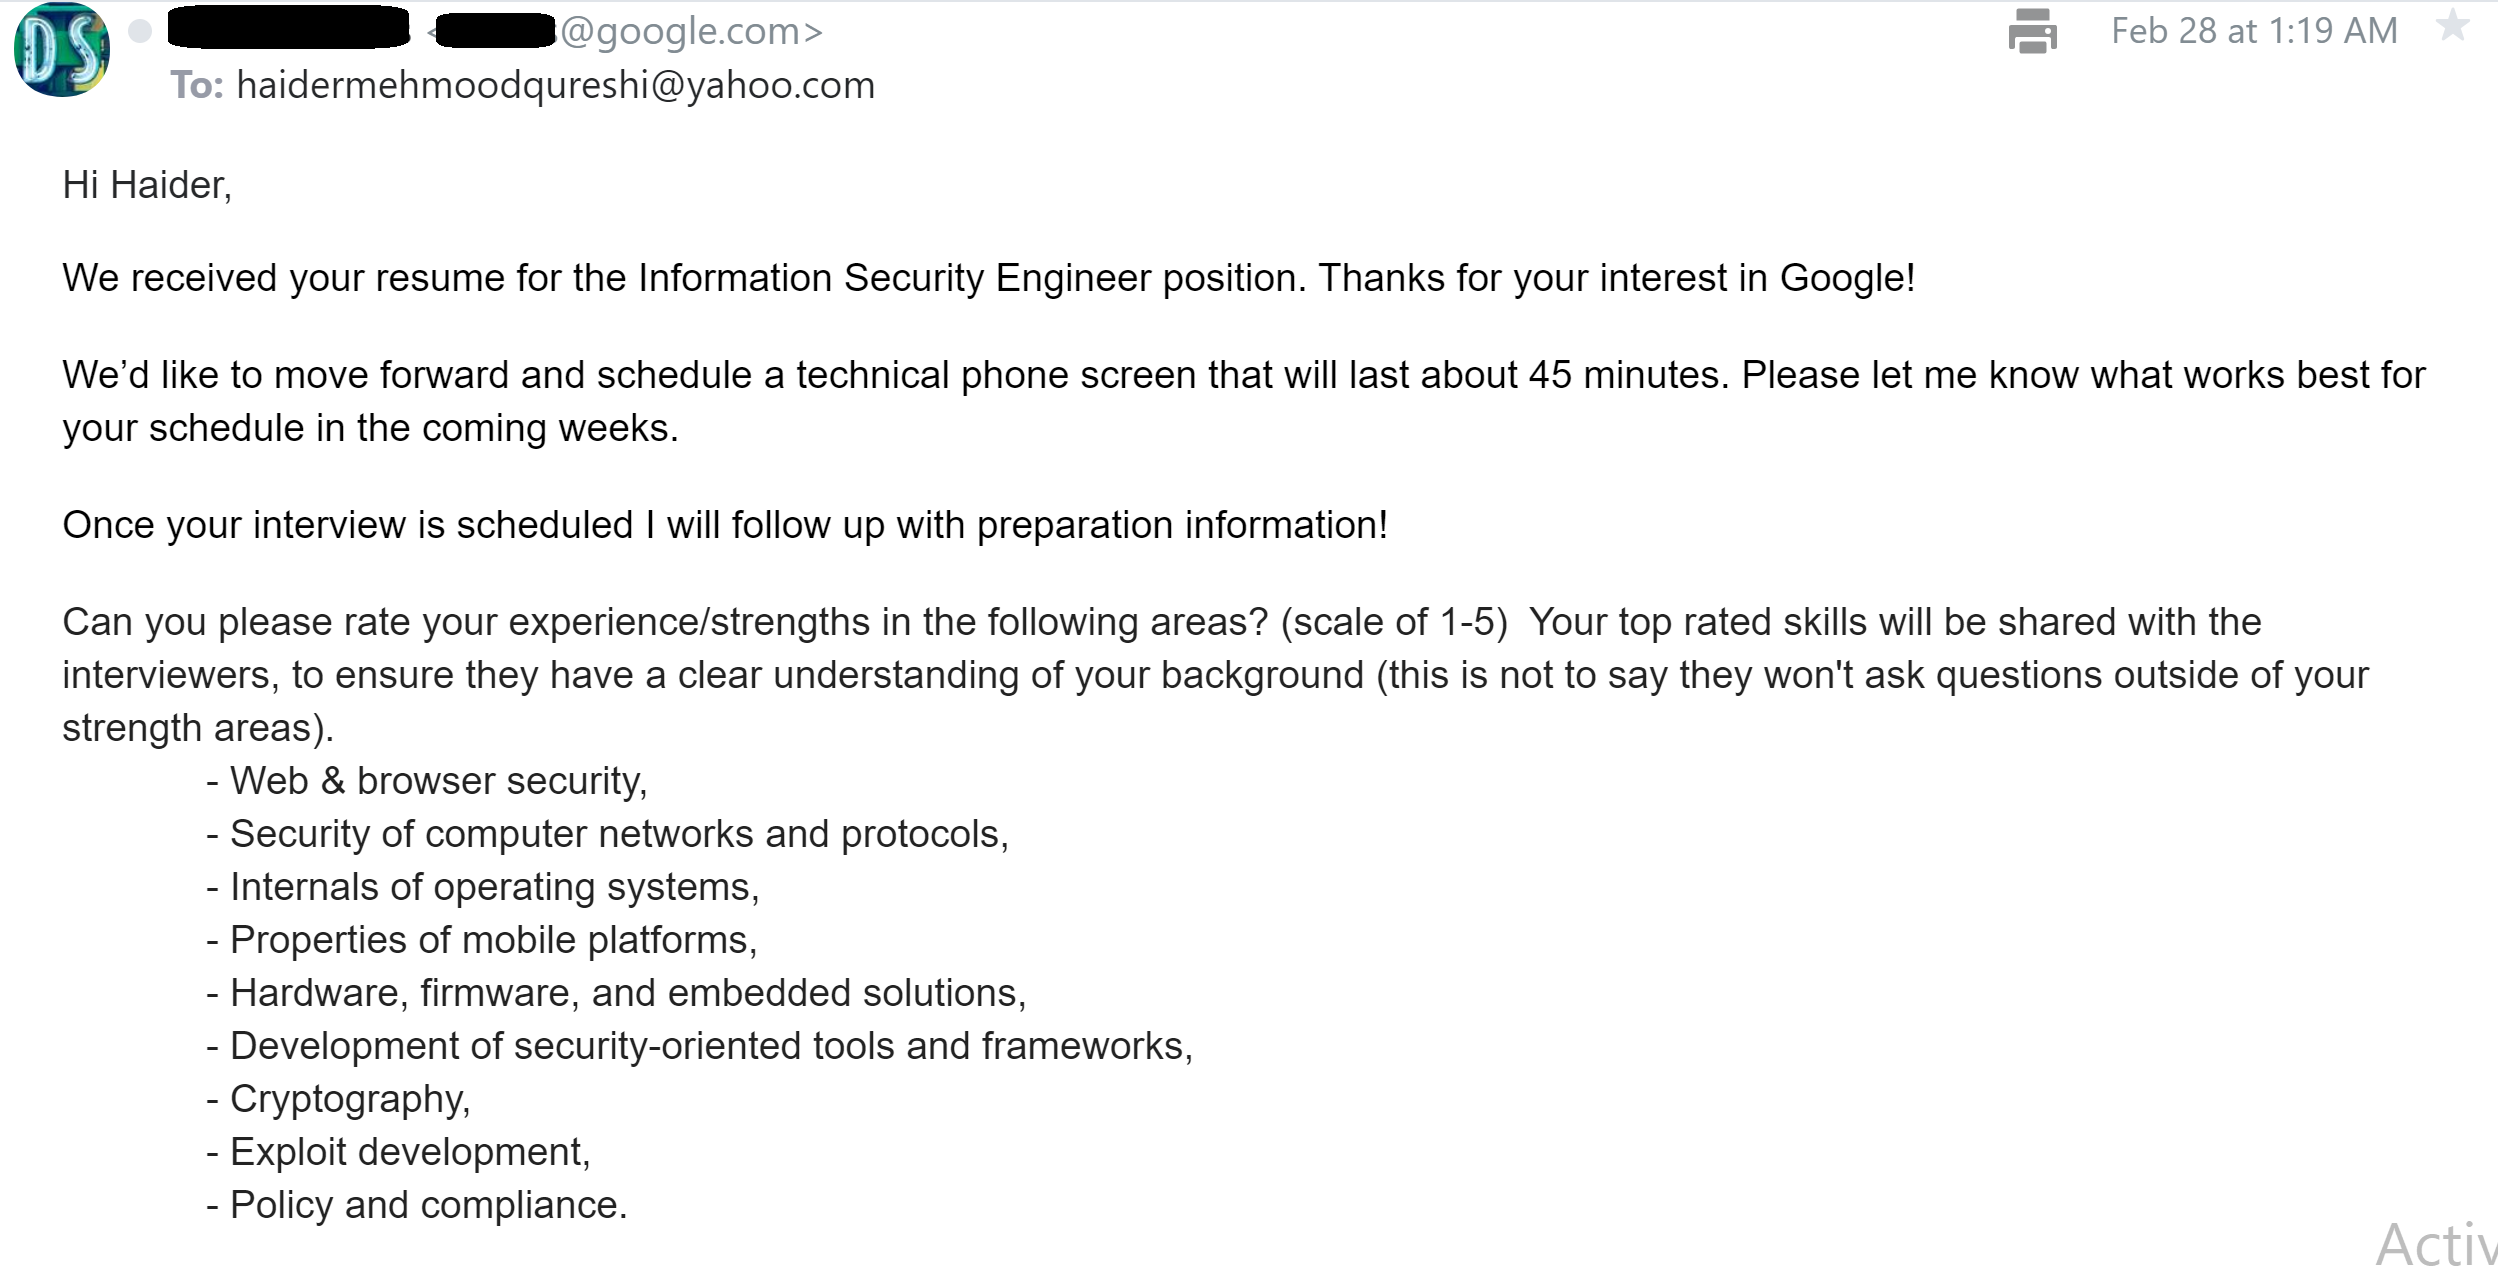 My experience with Google interview for information security